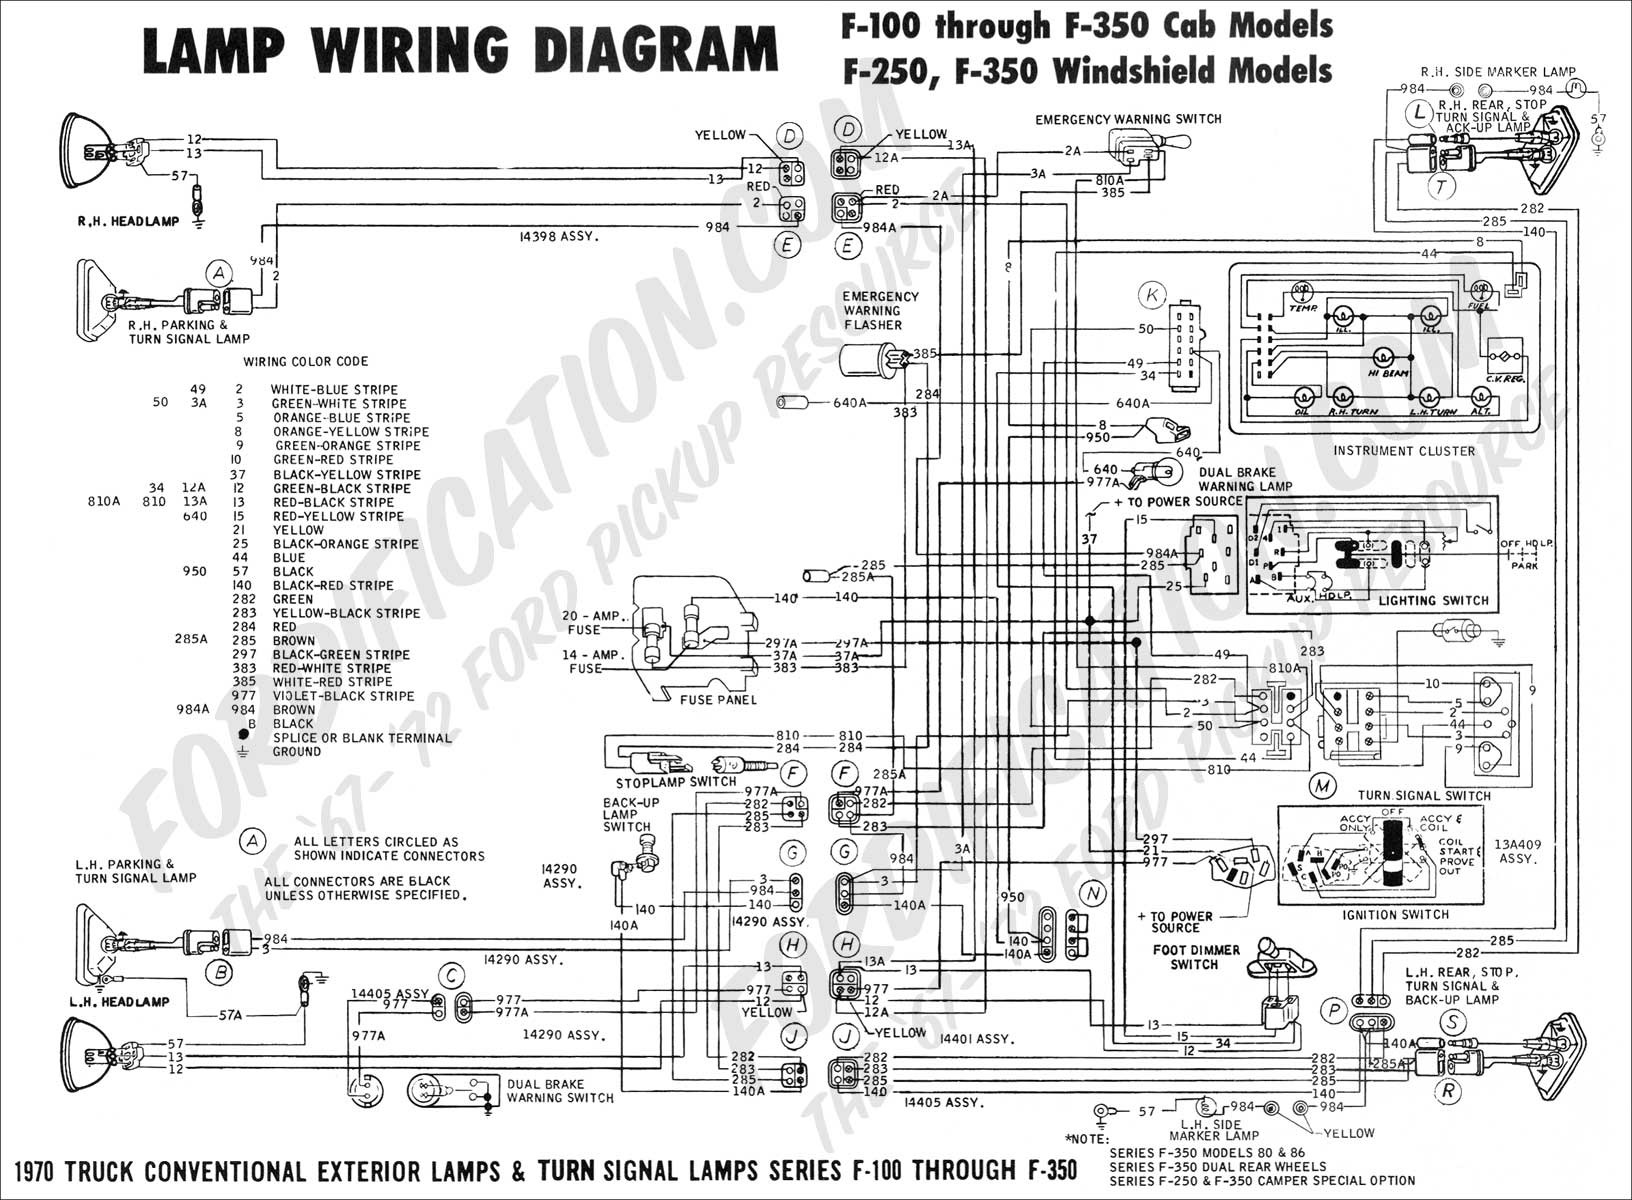 1997 ford F150 4 6 Engine Diagram ford F 250 Diagram Wiring Diagram Of 1997  ford